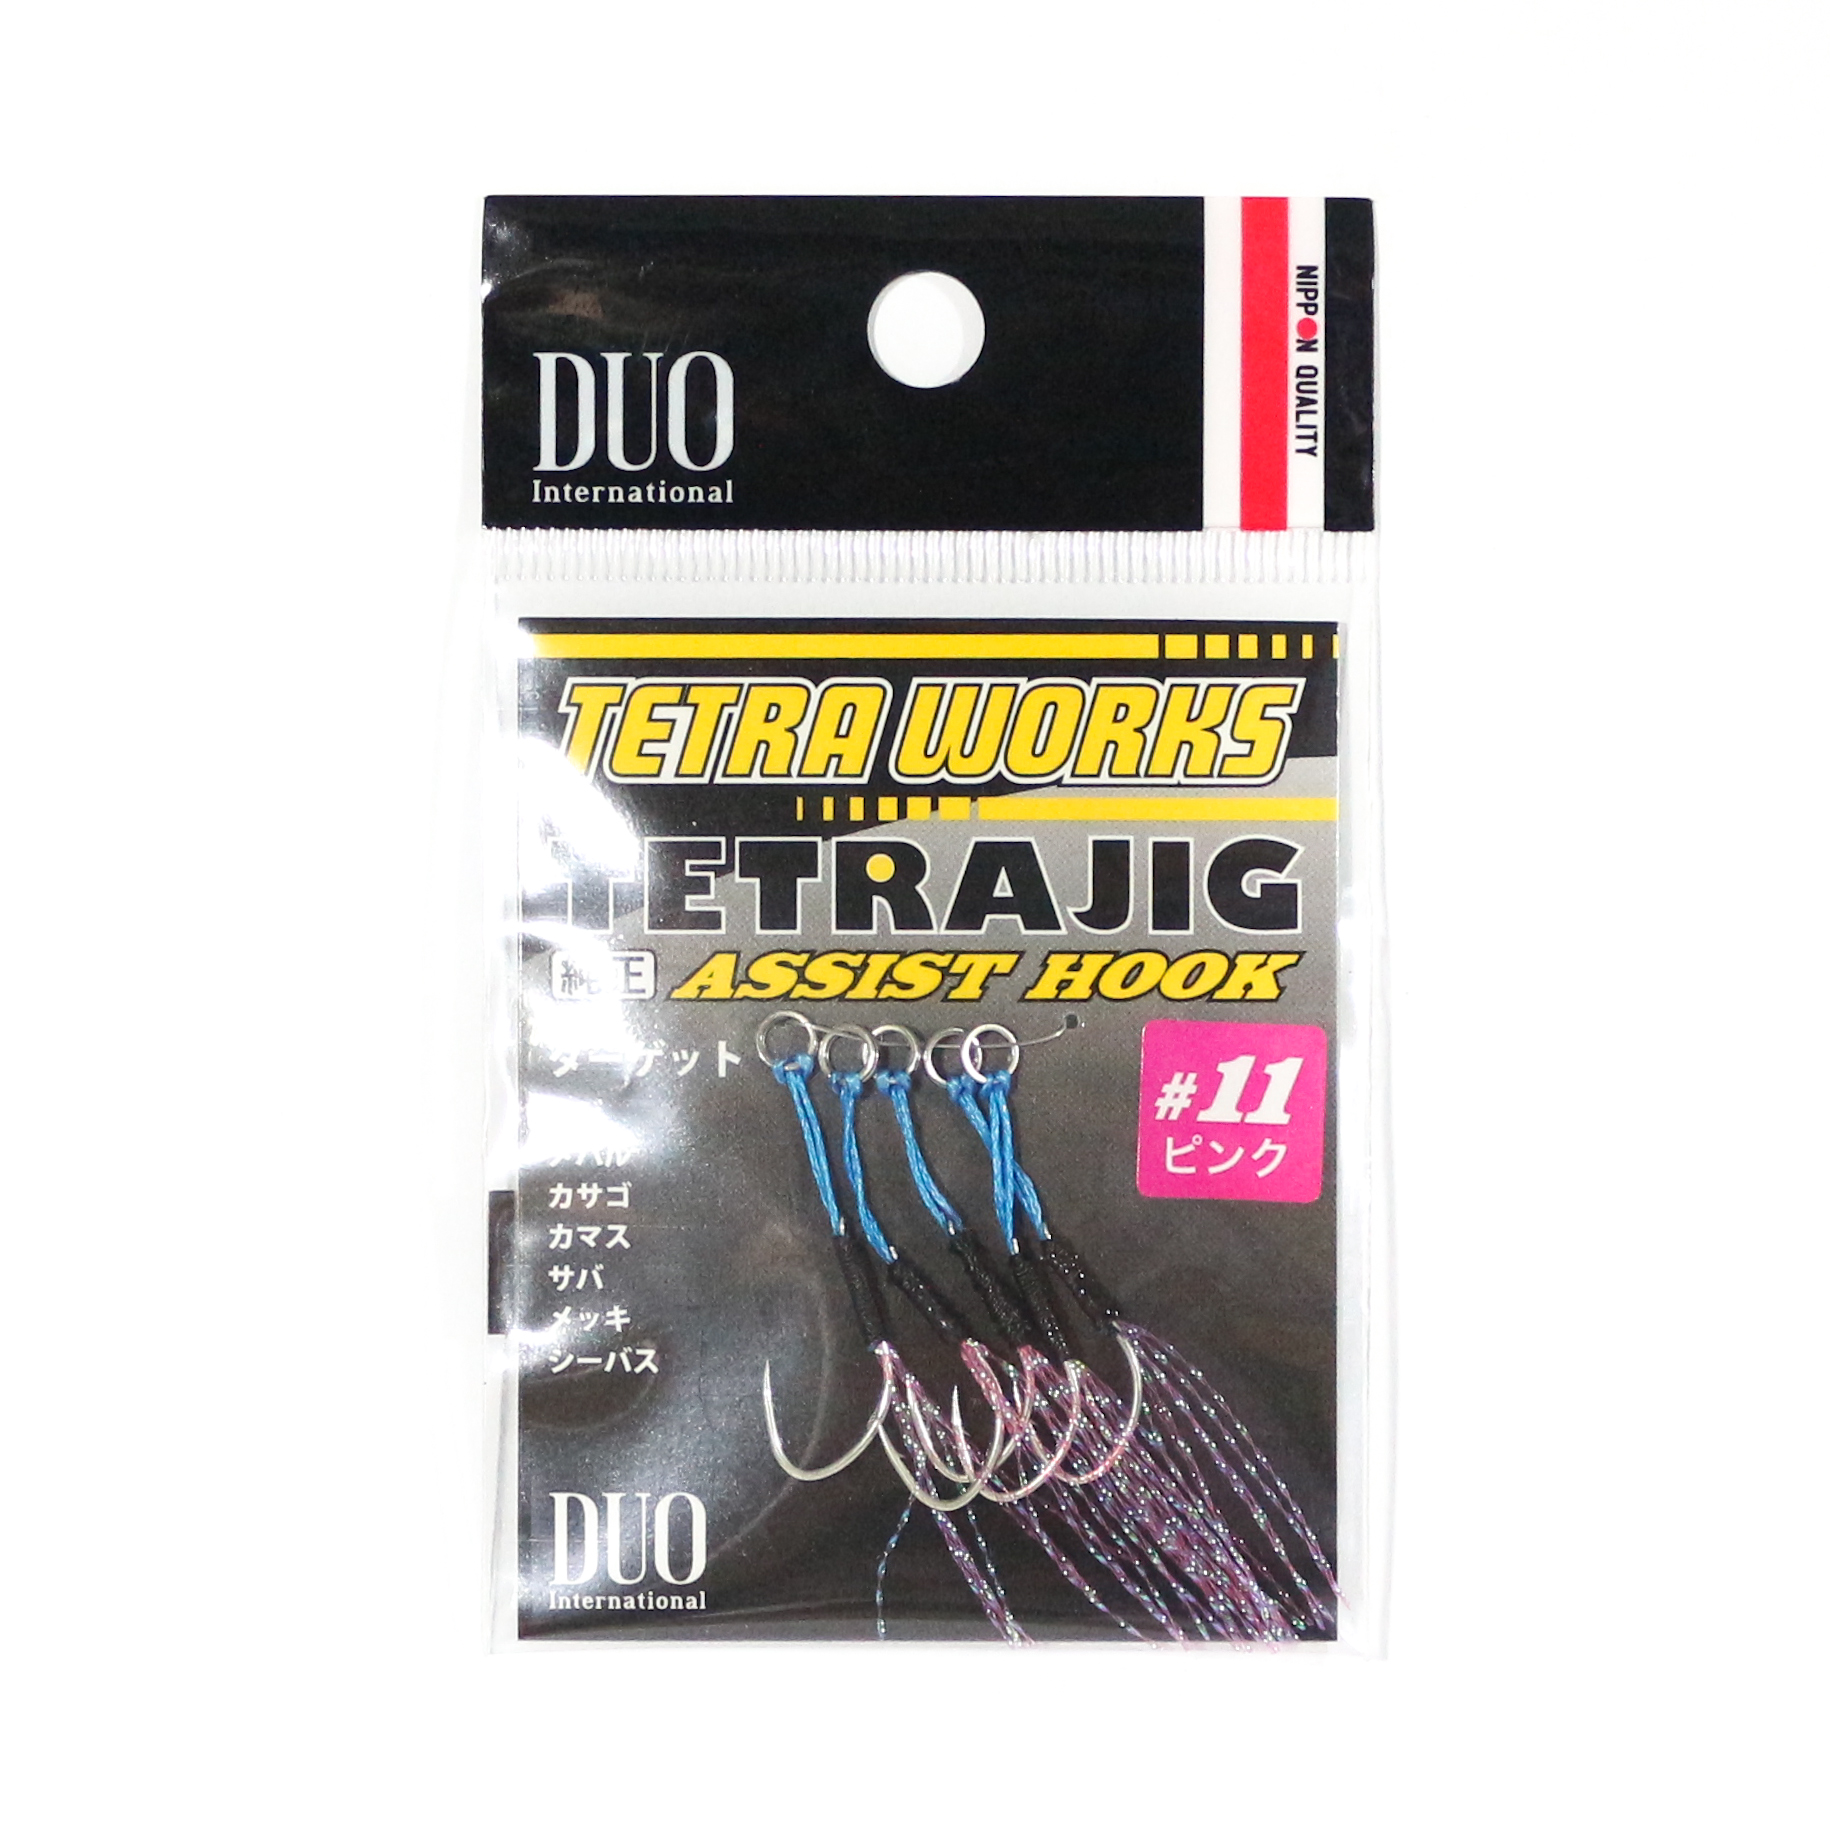 Duo Assist Hooks Tetra Works Pink Flash Size 11, 5 piece per pack #11 (3378)